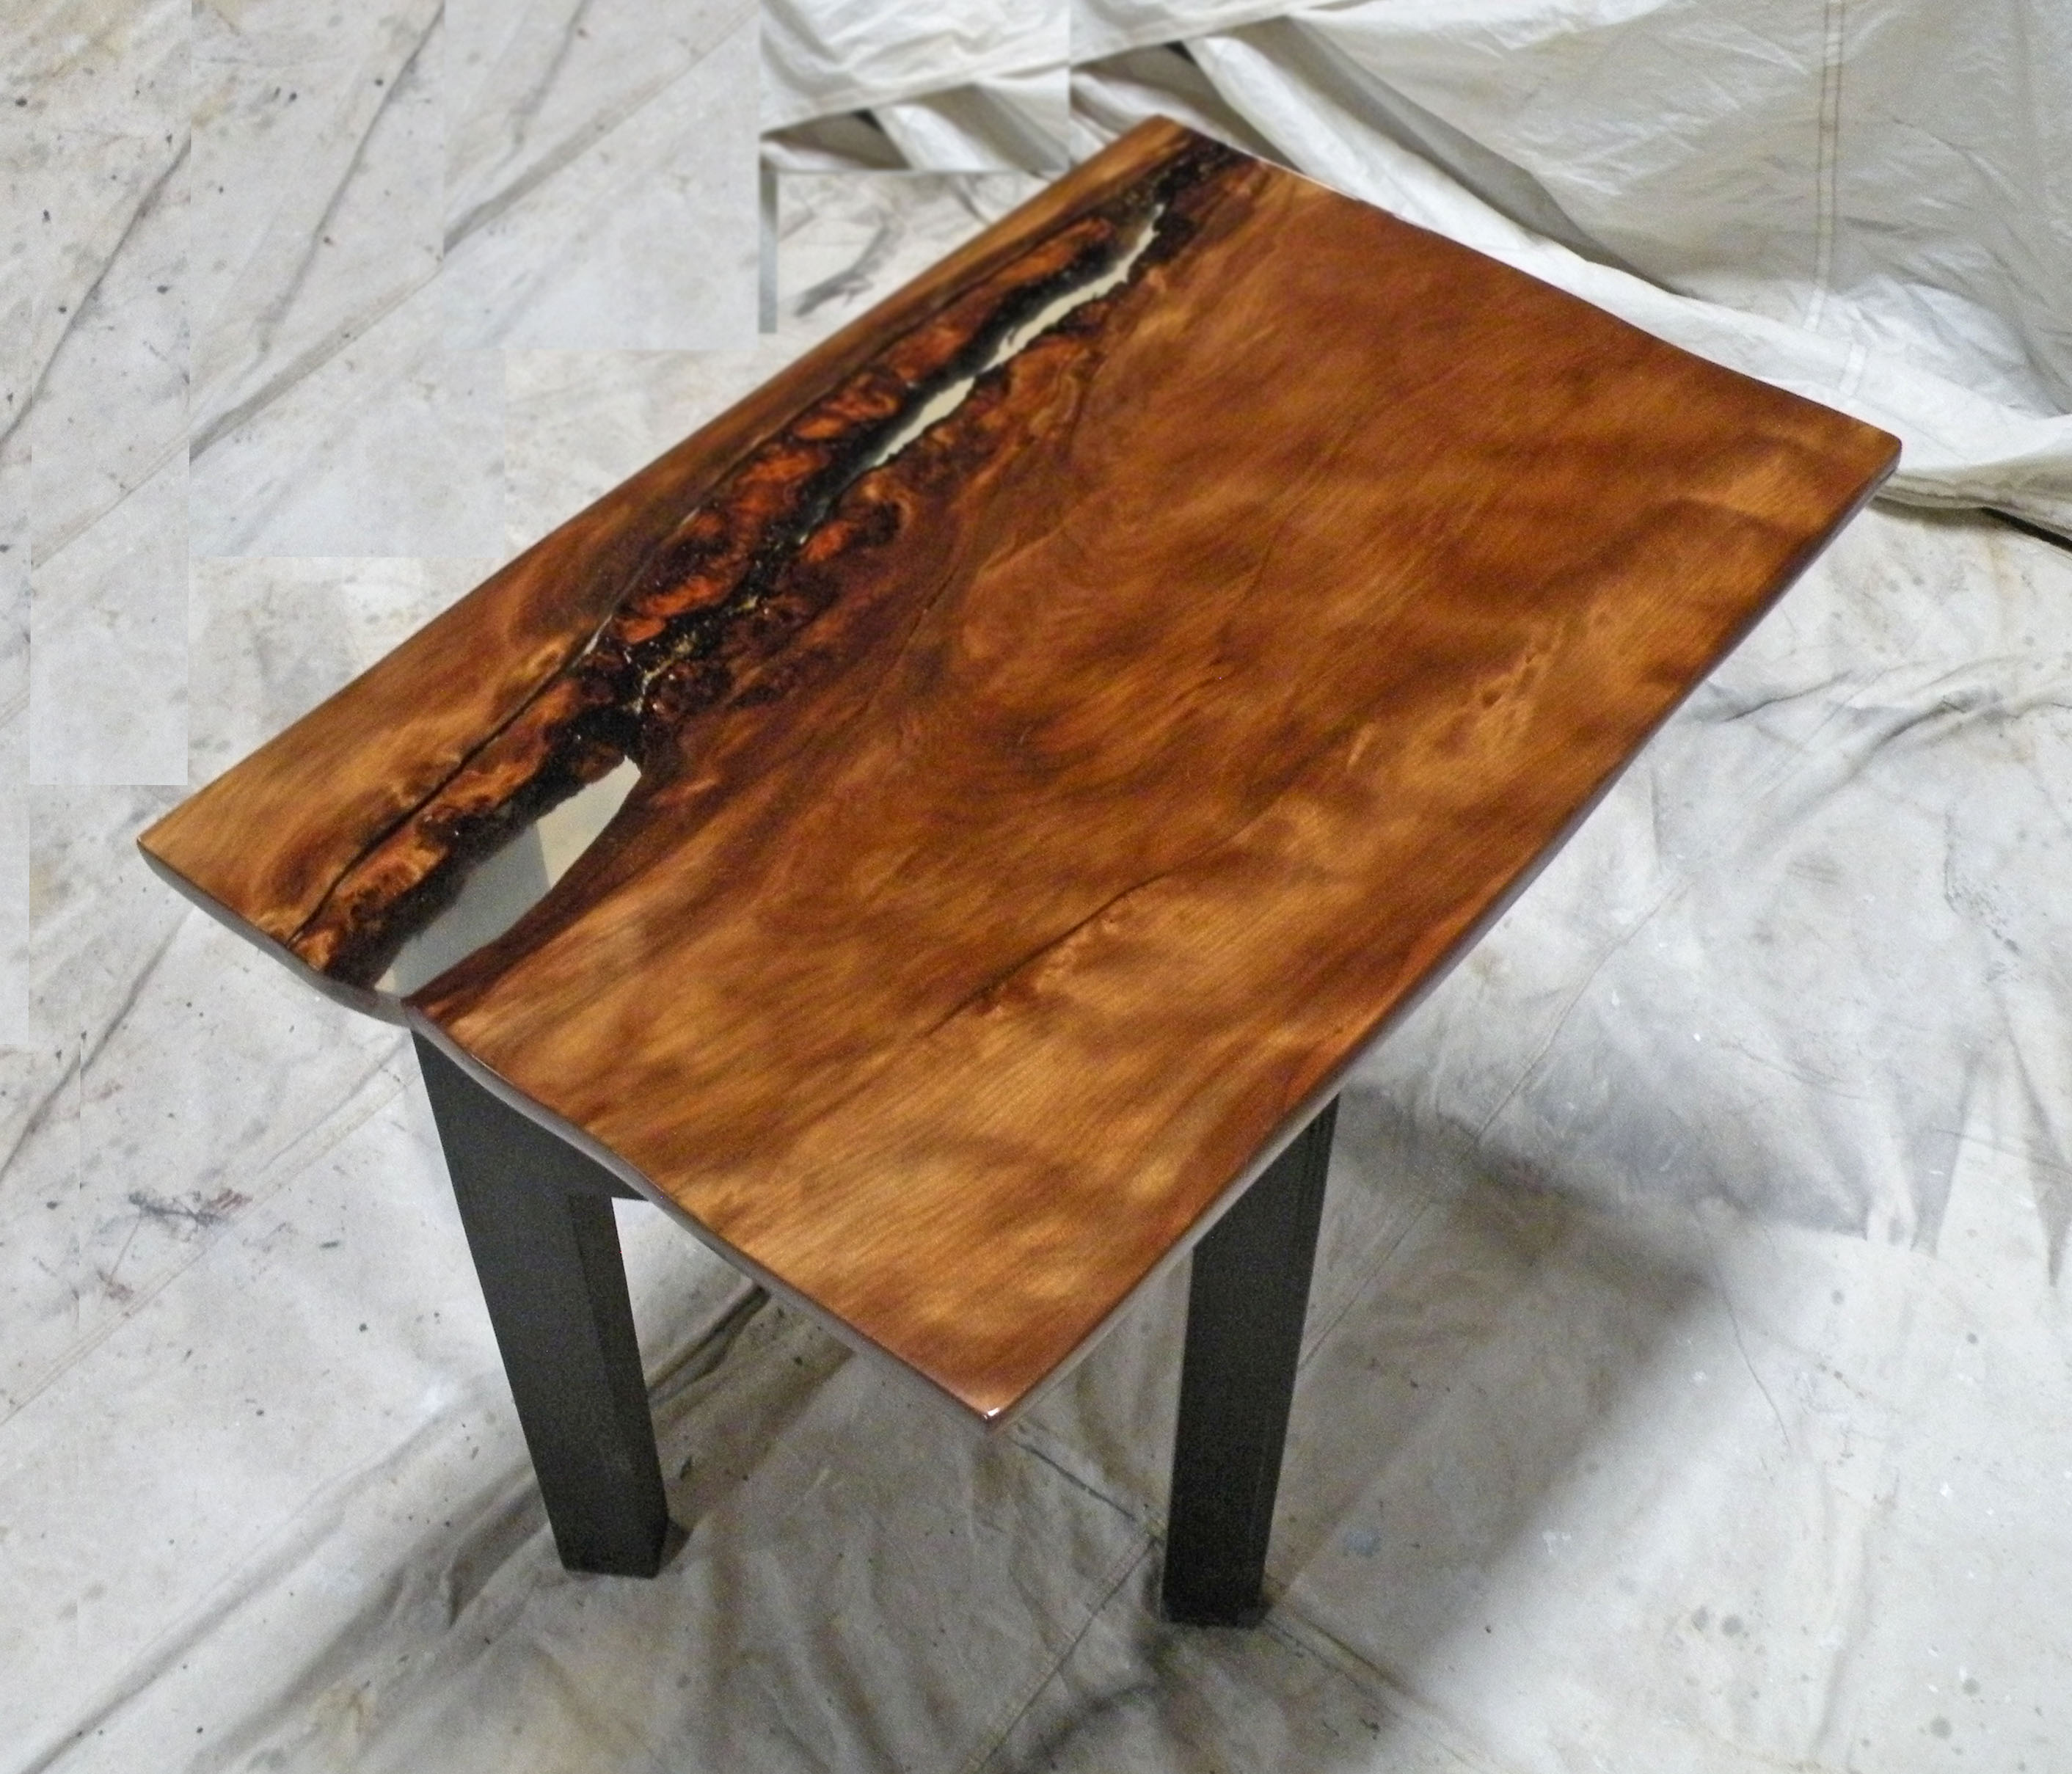 2 41 Sofa Or Coffee Table 24 X 36 Strong Chatoyance With Clear Epoxy Infill High Drama Ancientwood Ltd